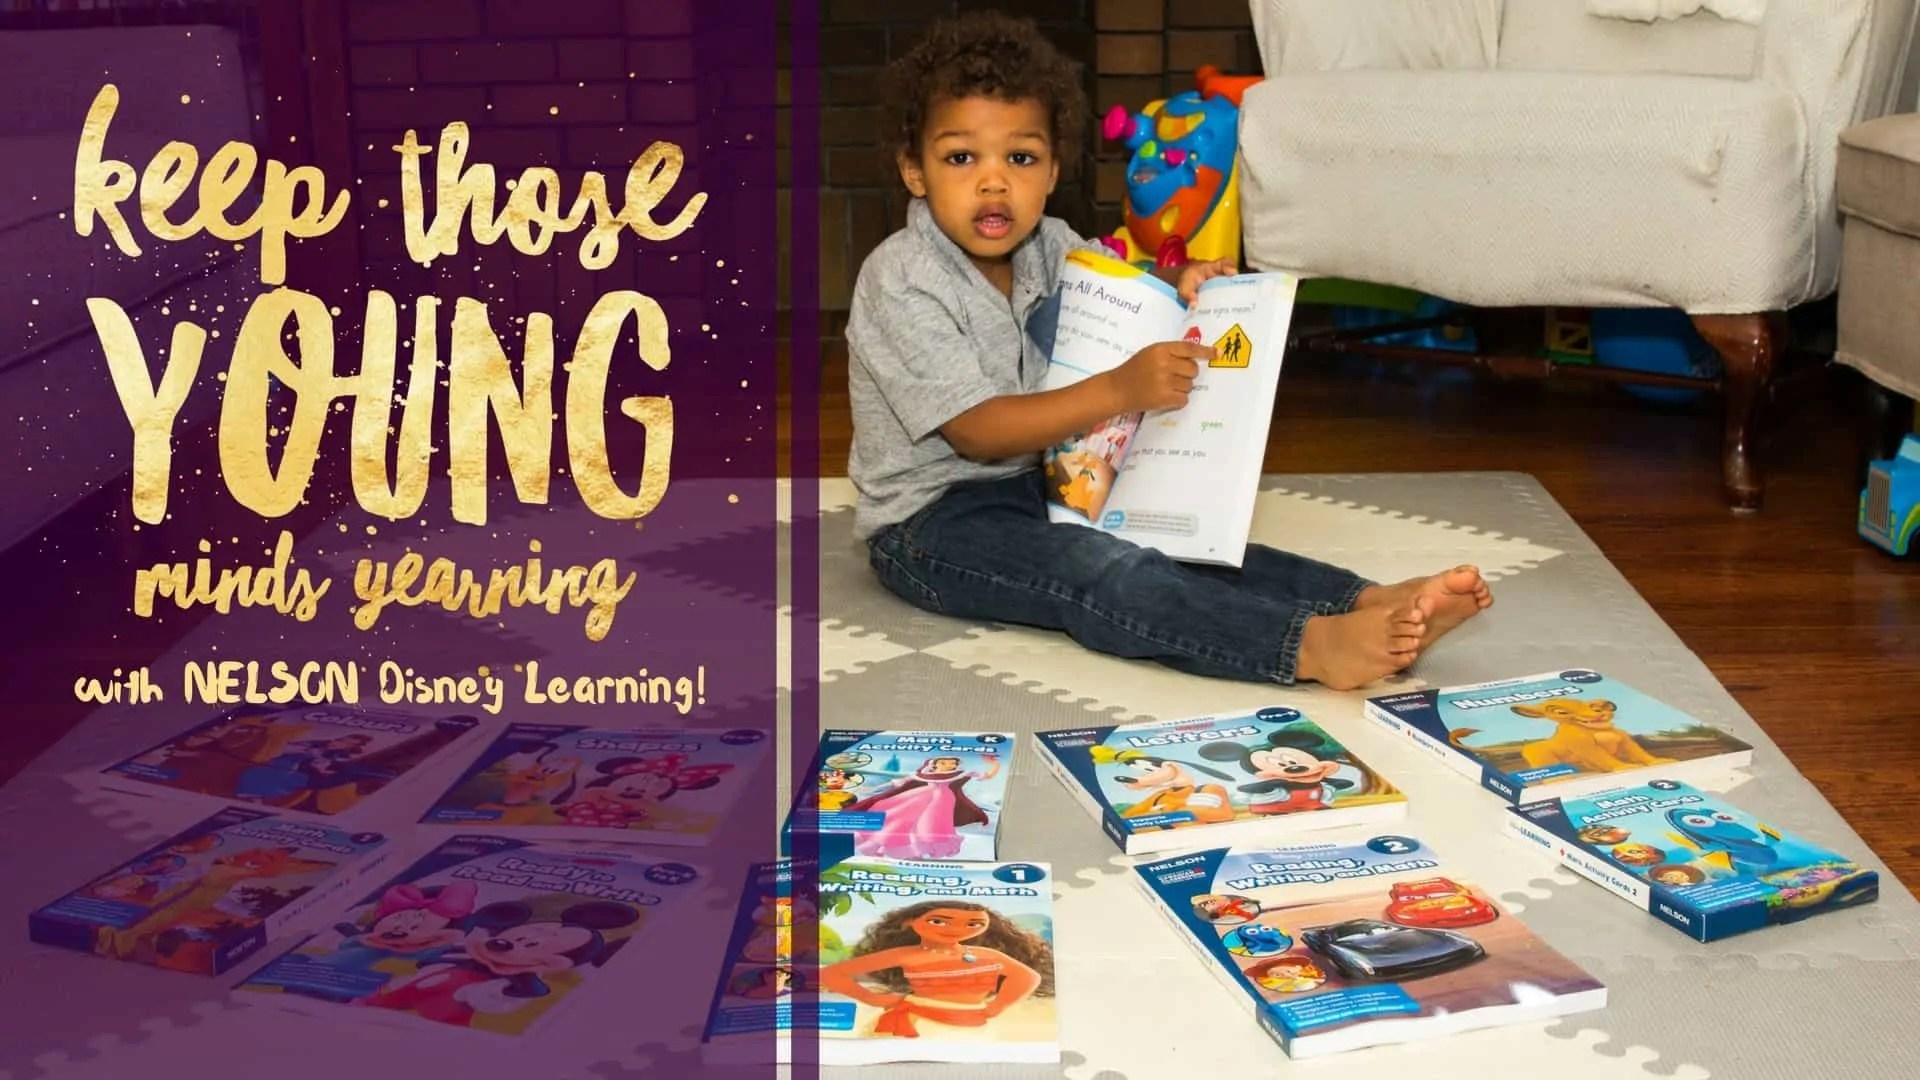 Keep Those Young Minds Yearning with NELSON Disney Learning! (Featured Image)